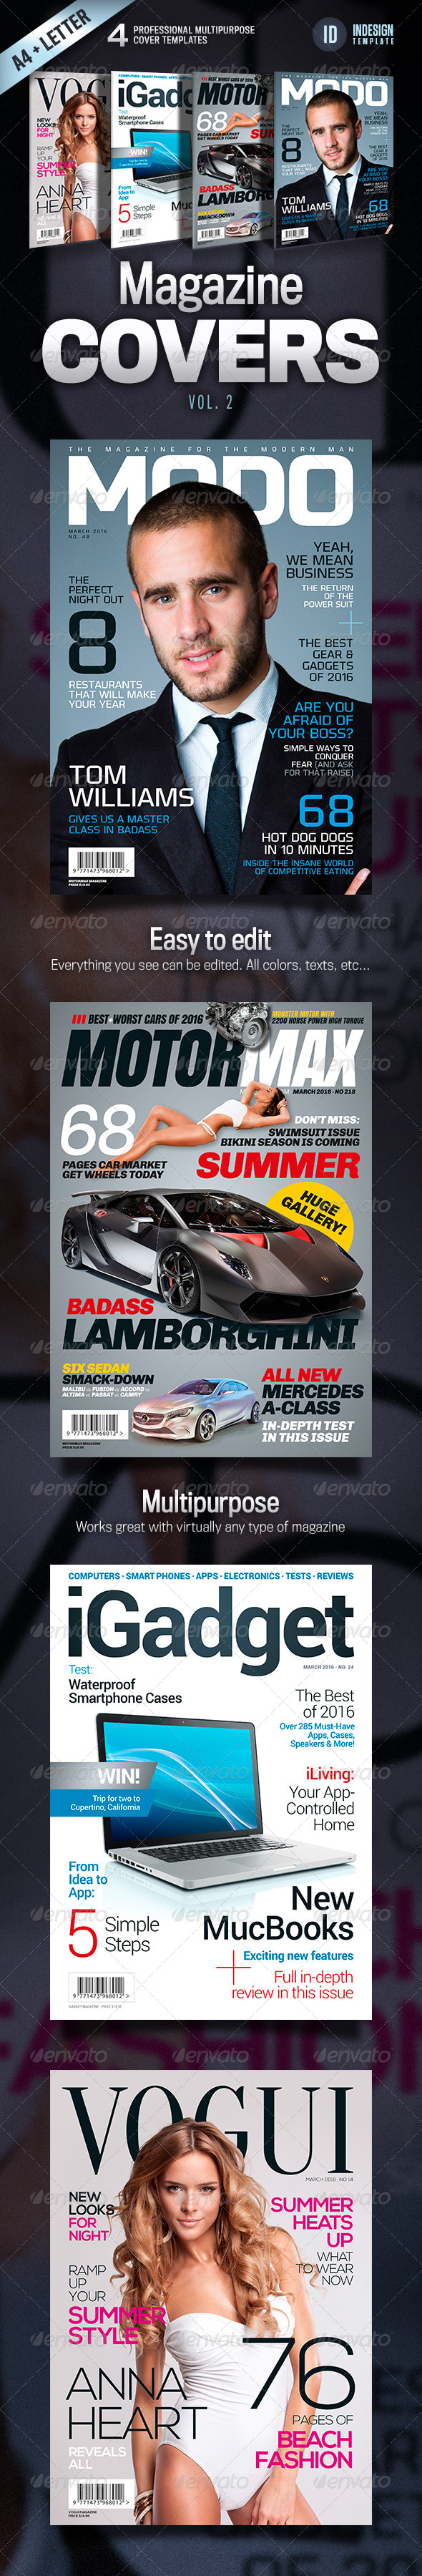 GraphicRiver Magazine Covers Vol 2 4481772